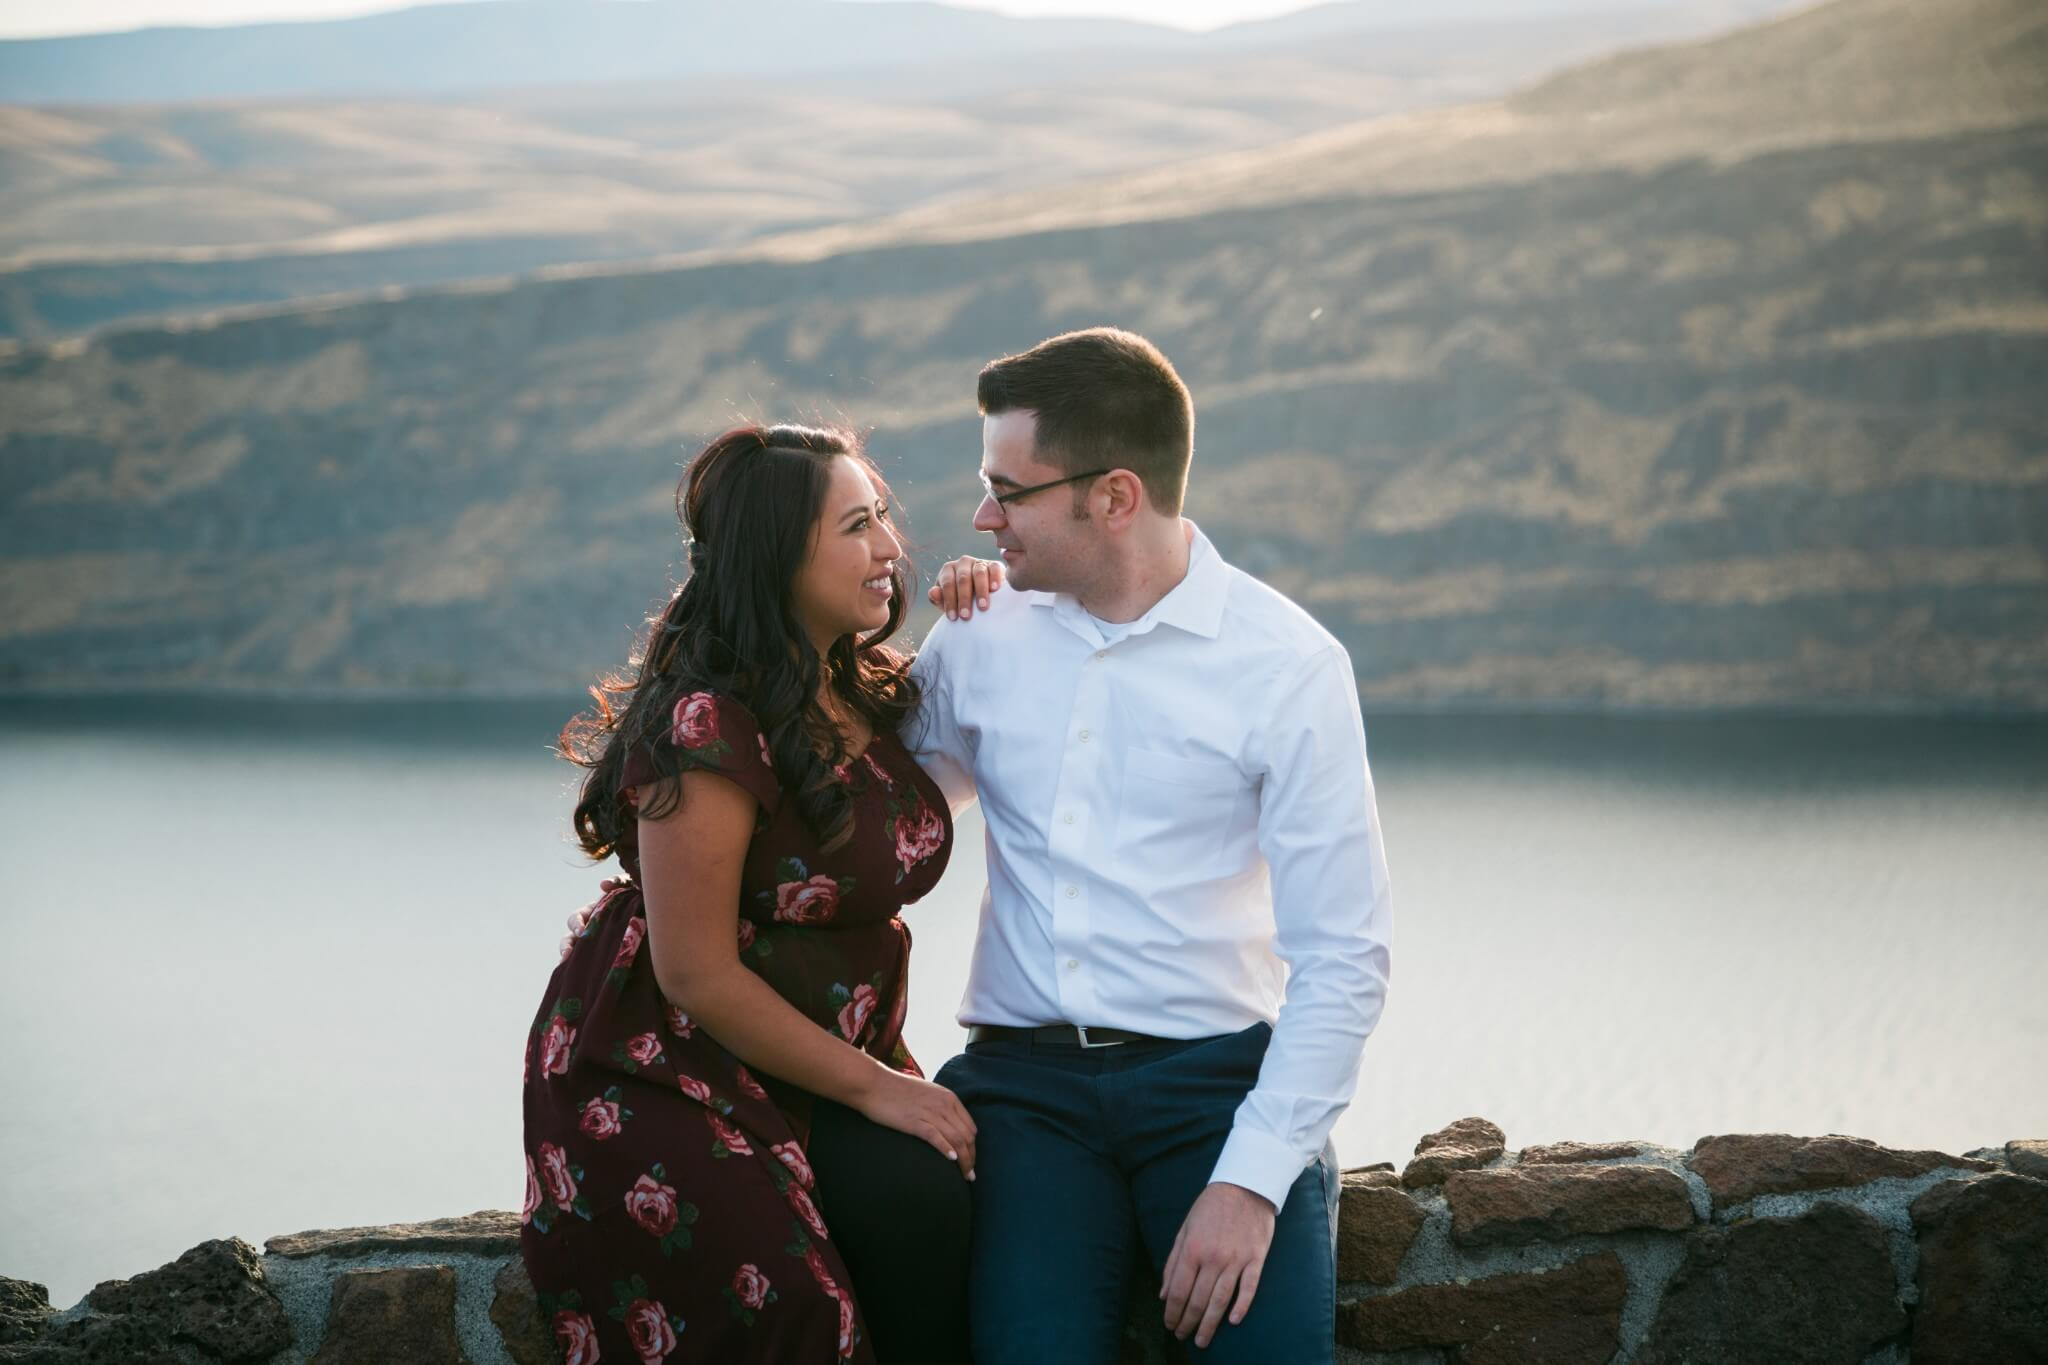 Lesly & Michael Vantage Engagement by Bill Weisgerber Spokane Photographer (23 of 71).jpg